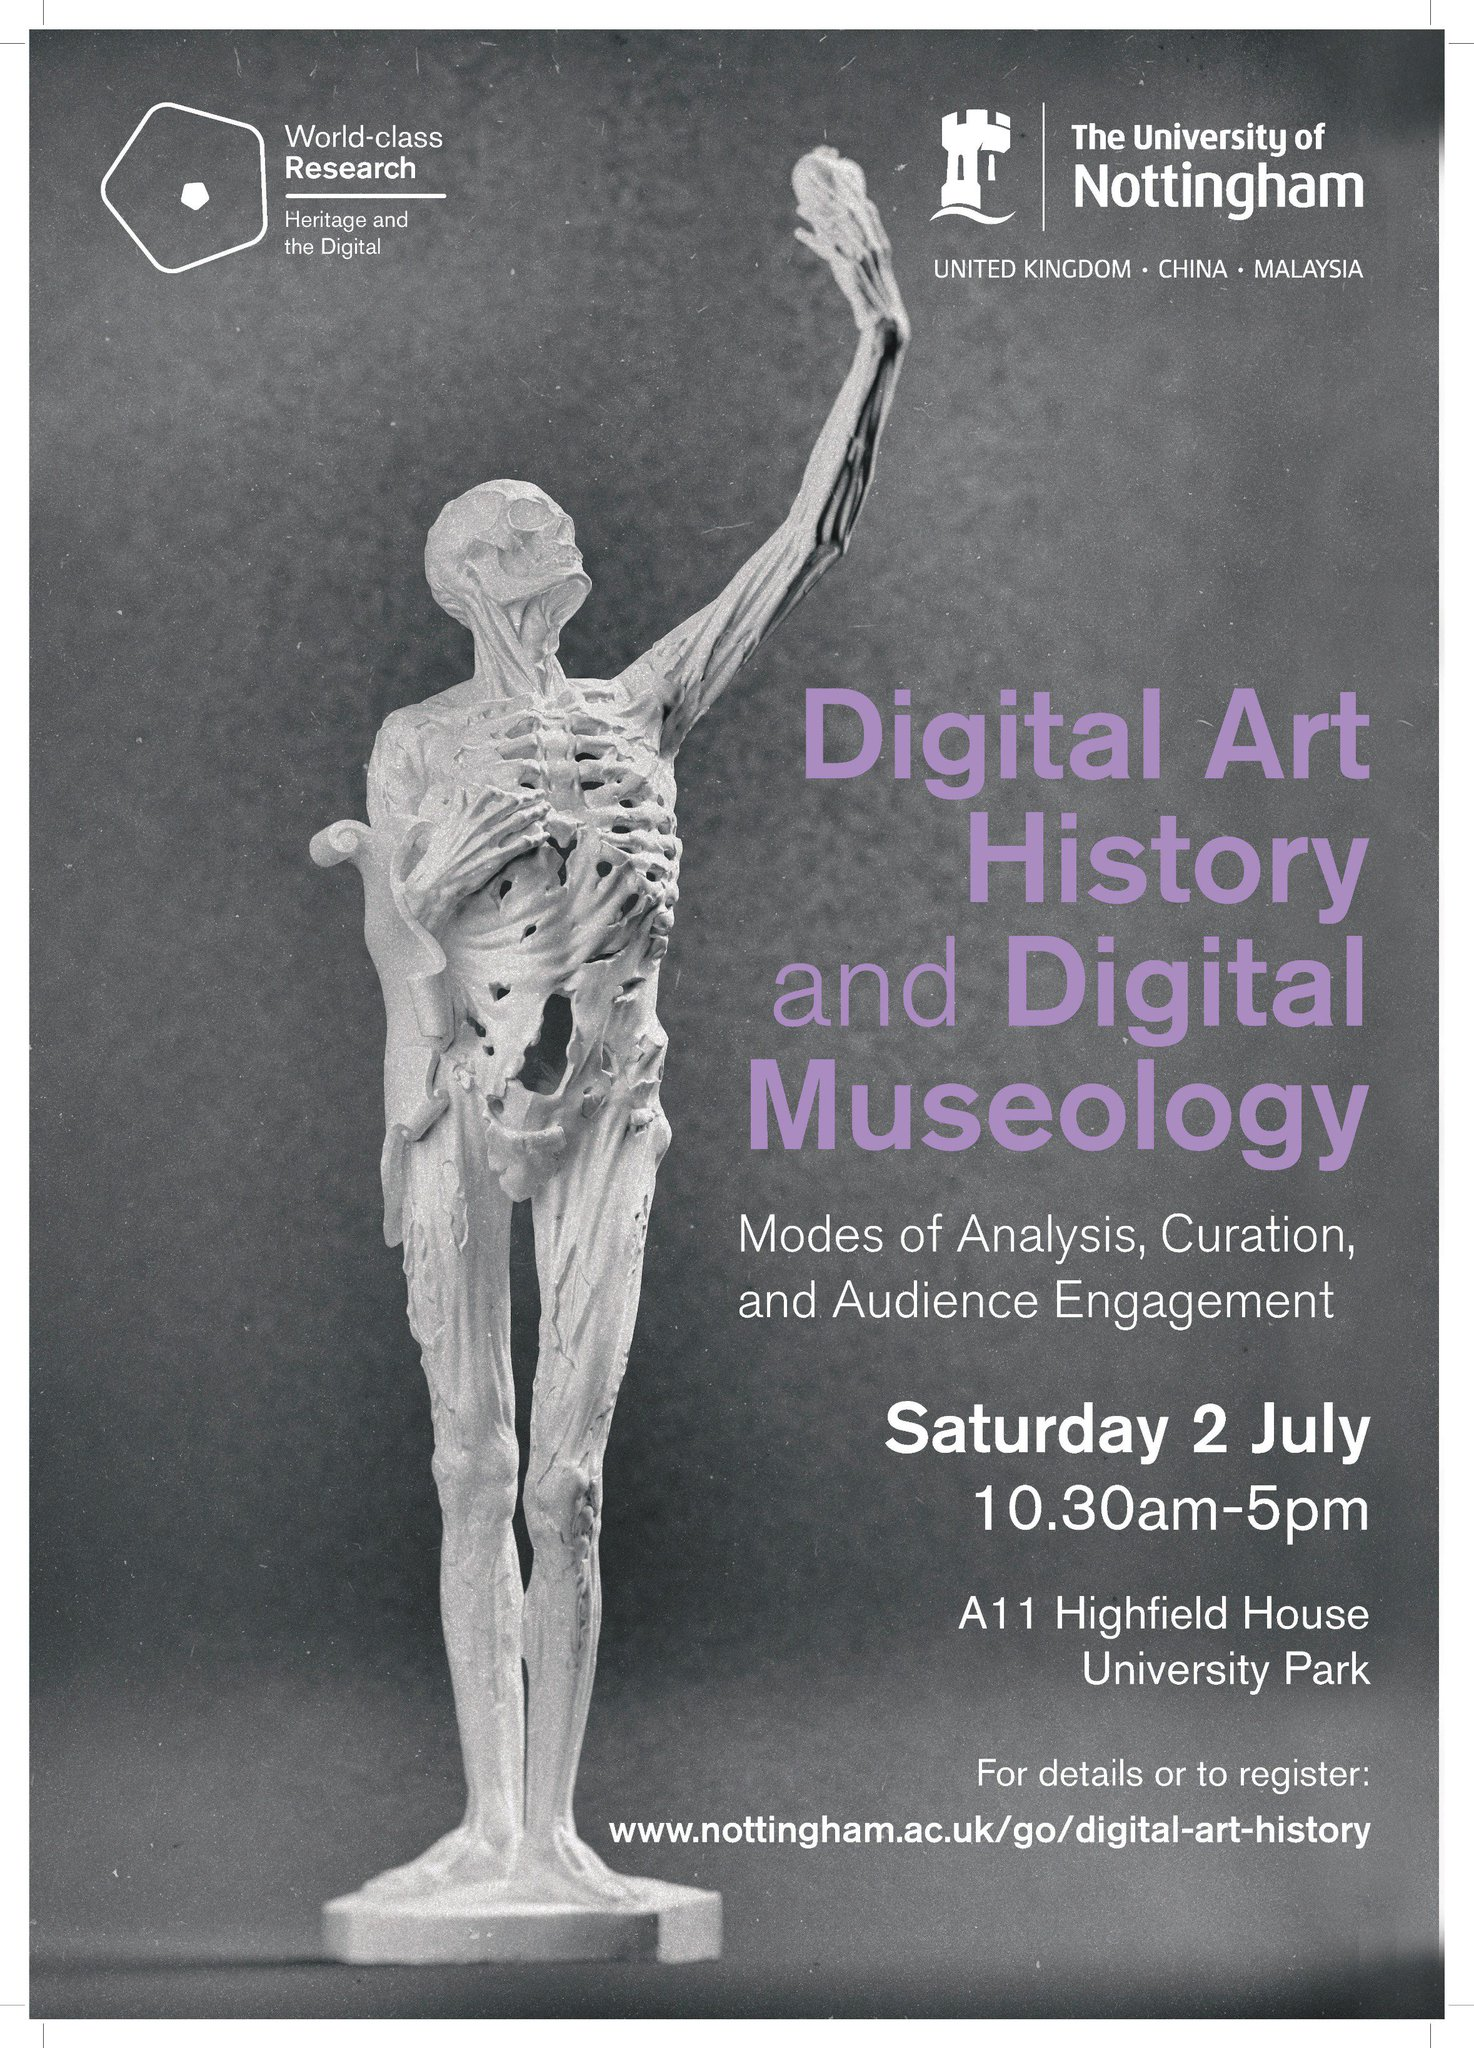 Thumbnail for Digital Art History and Digital Museology: Modes of Analysis, Curation, and Audience Engagement